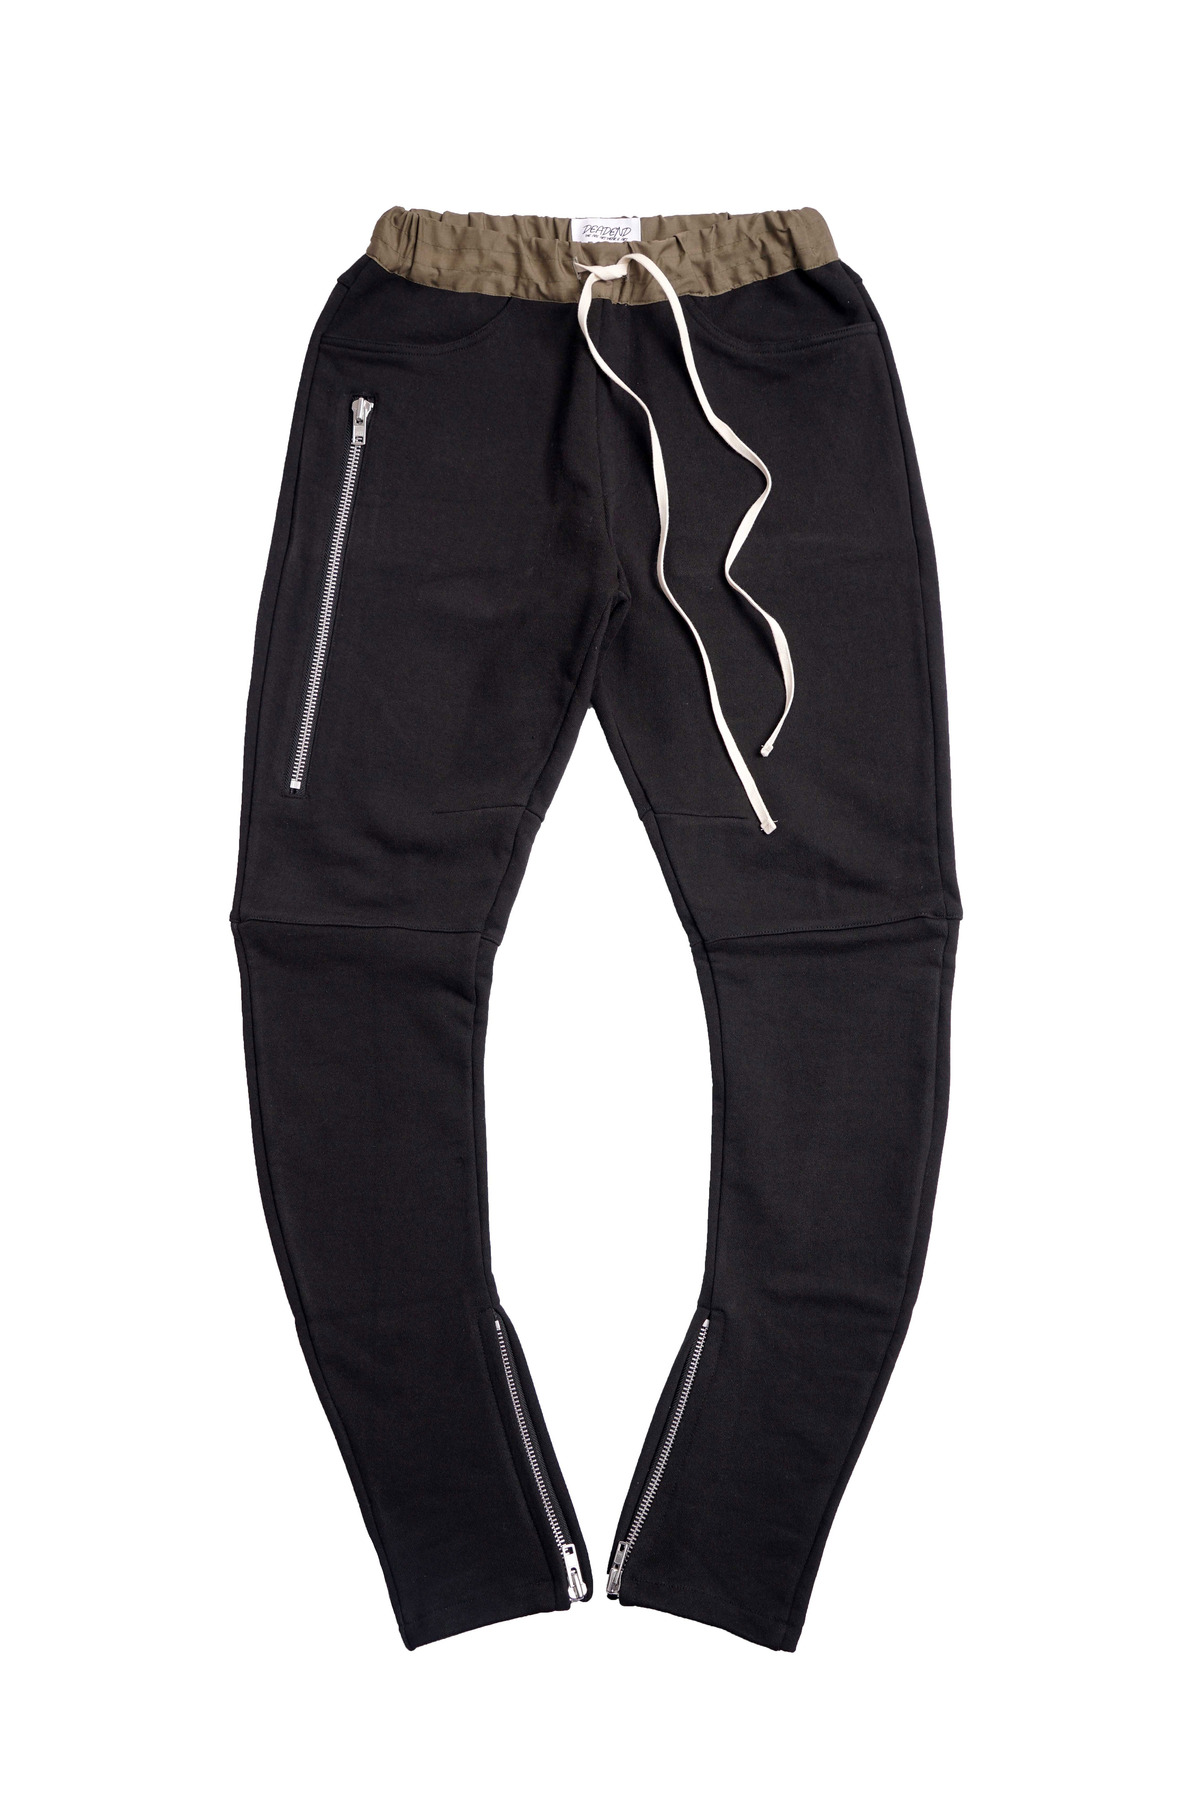 BLACK J- DRAWSTRING PANTS